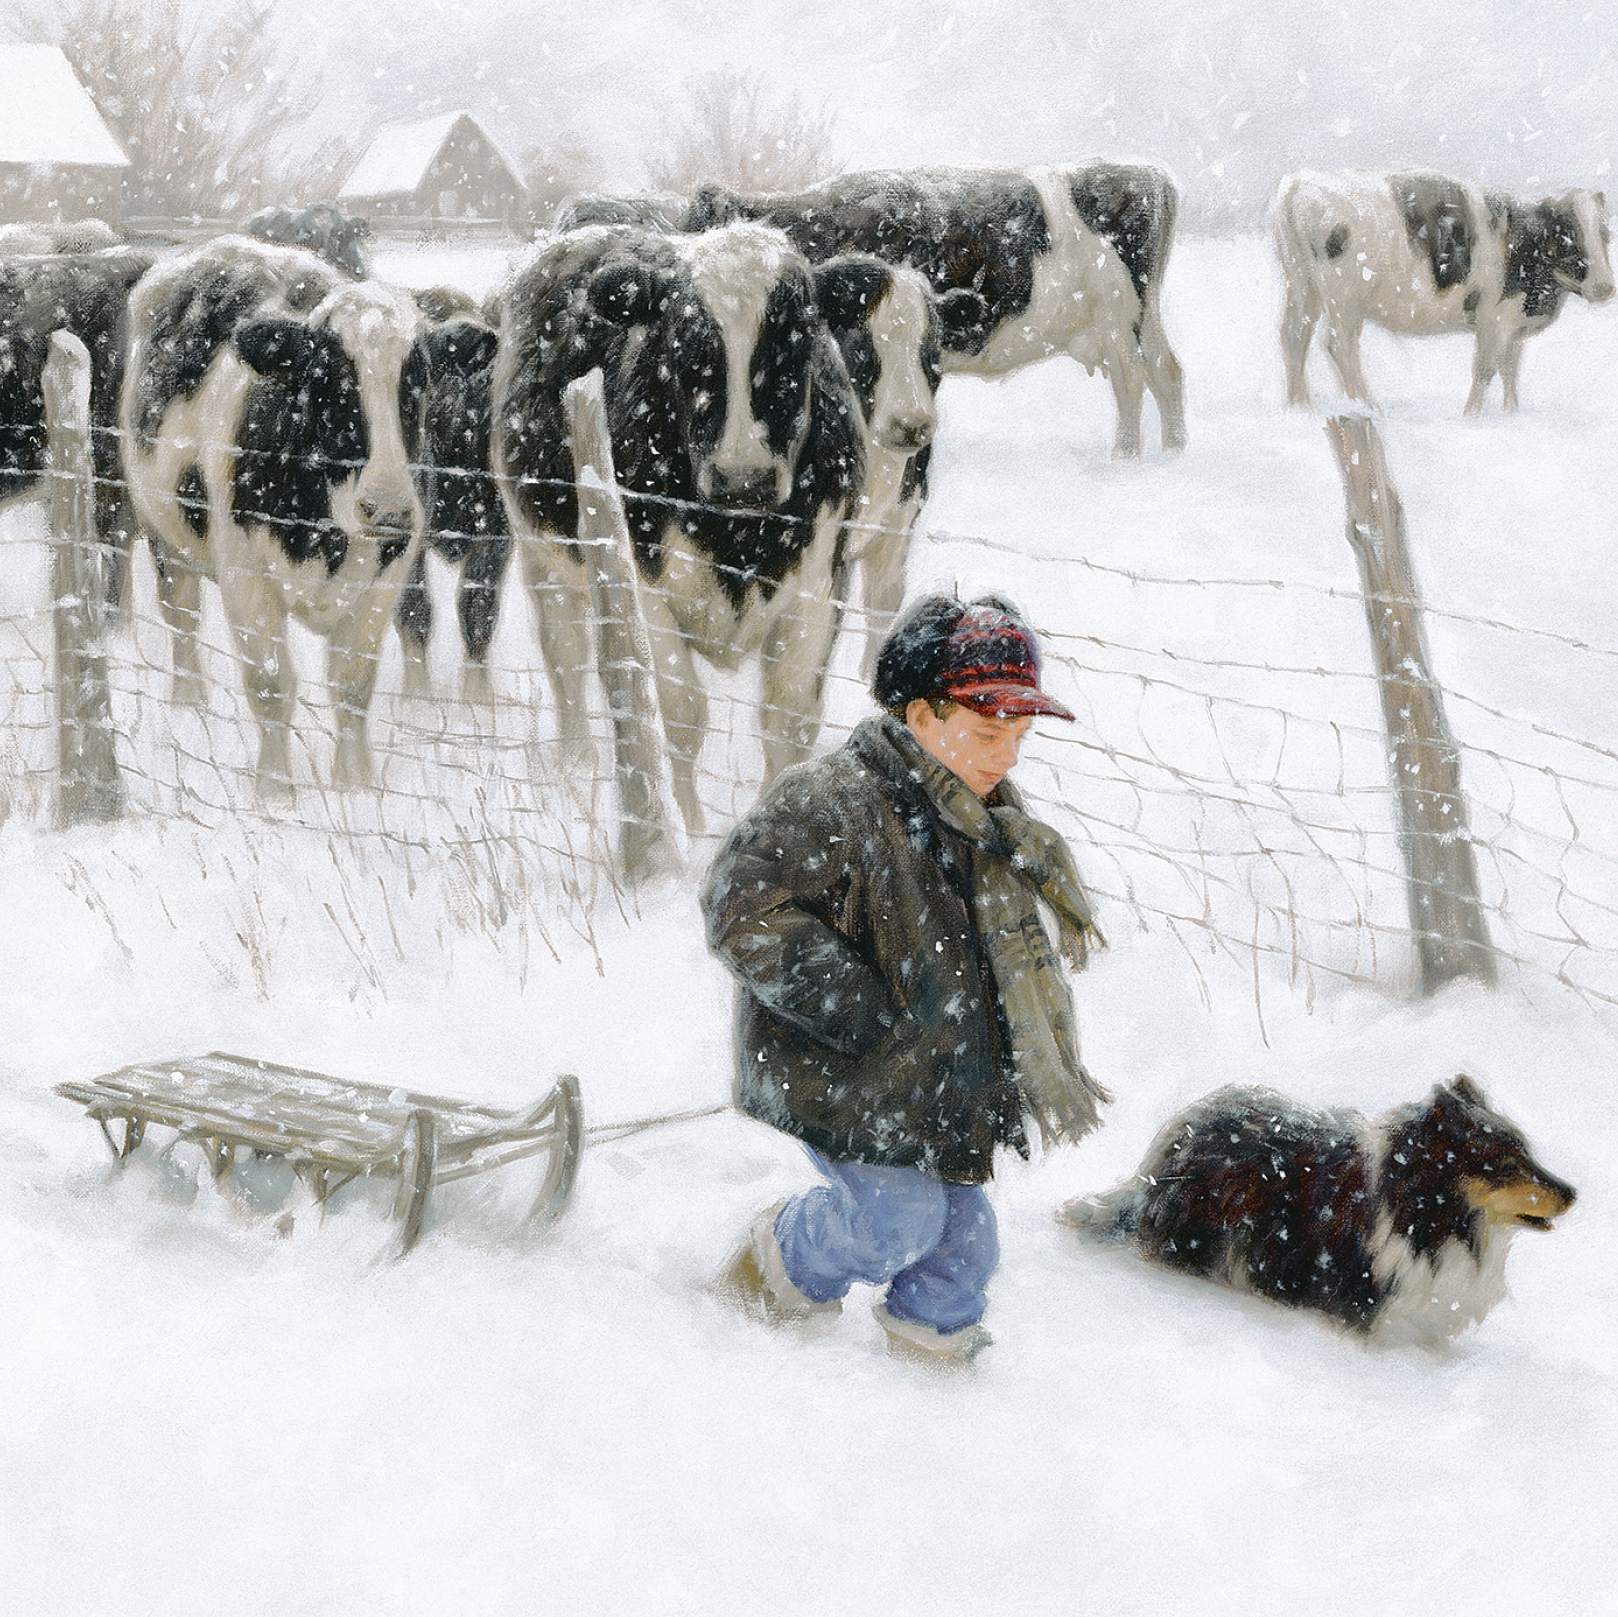 Cows watch a boy and dog pull a sledge in the snow